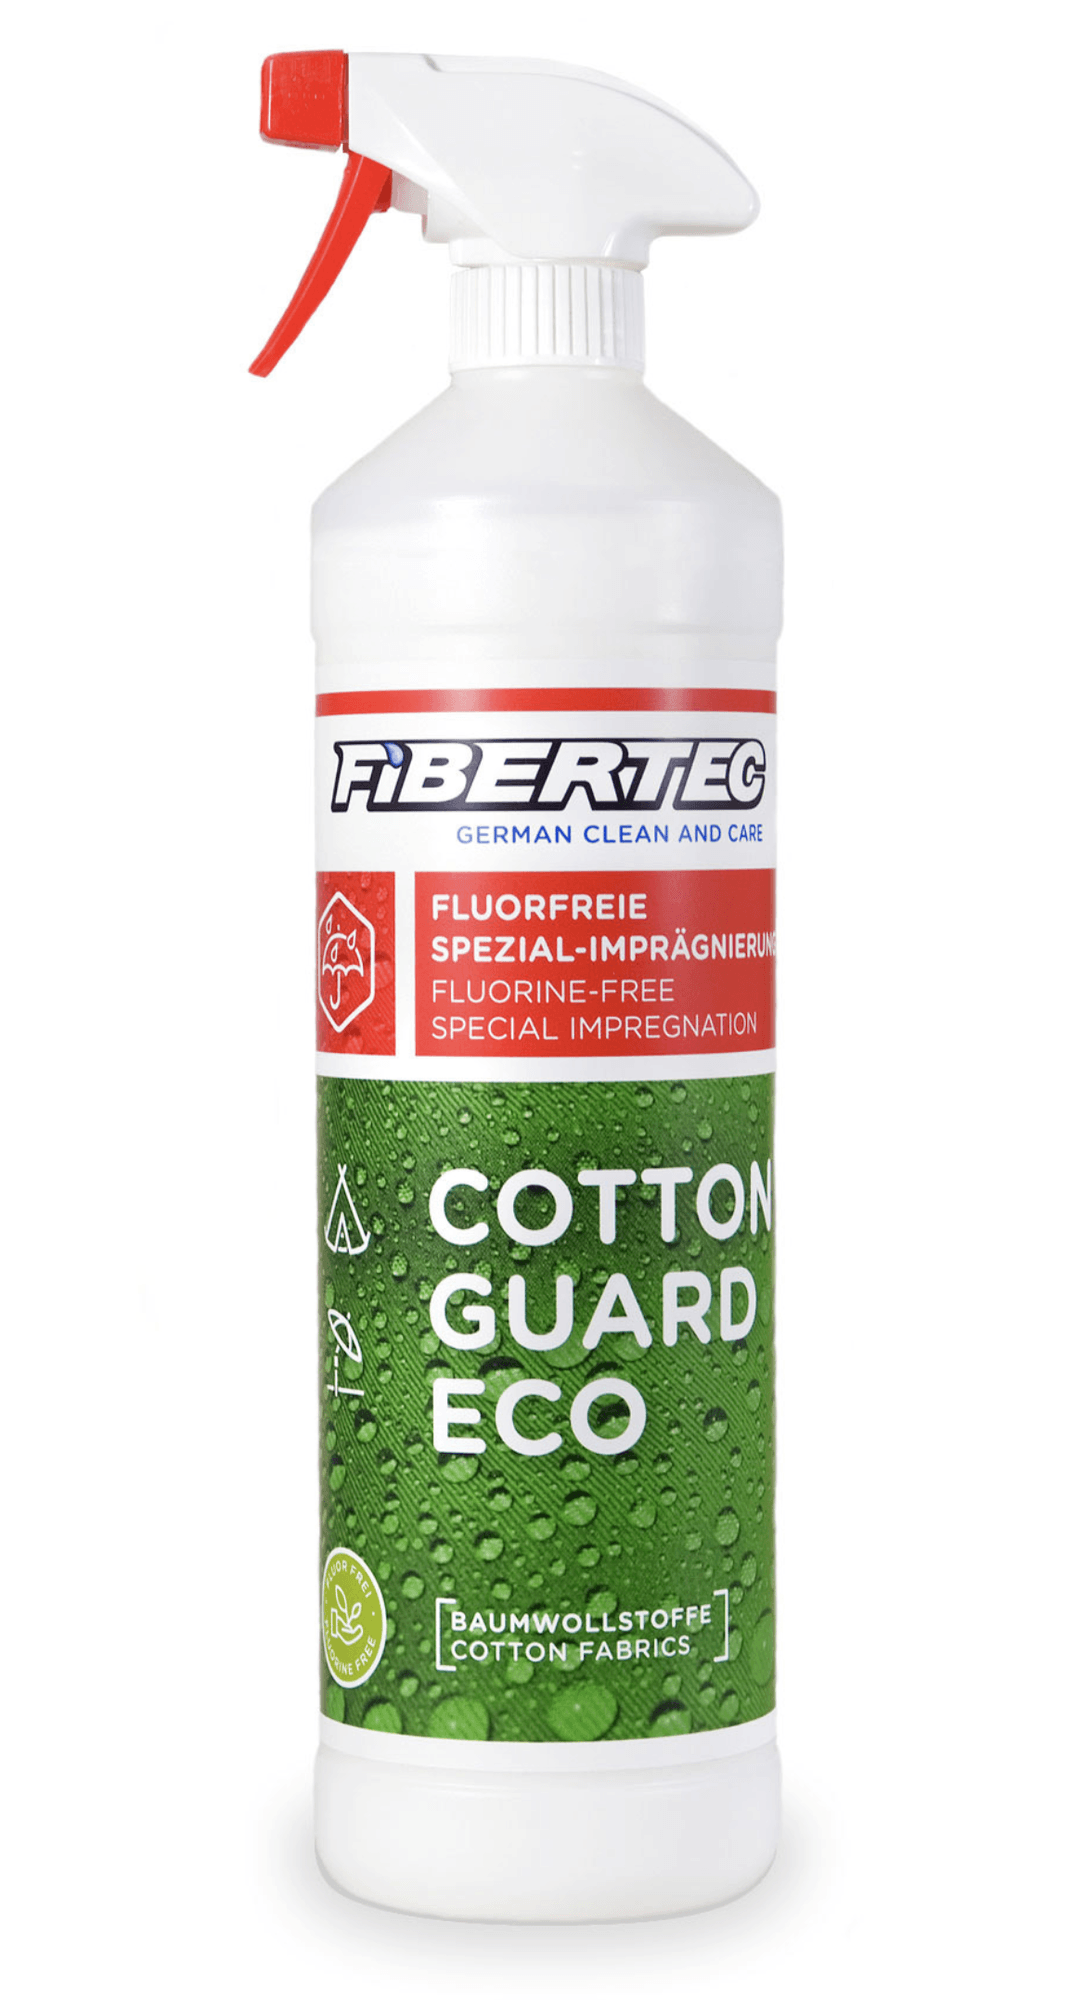 Fibertec Fibertec Cotton Guard Eco. Fibertec all products from Fibertec 04cff964ae73f